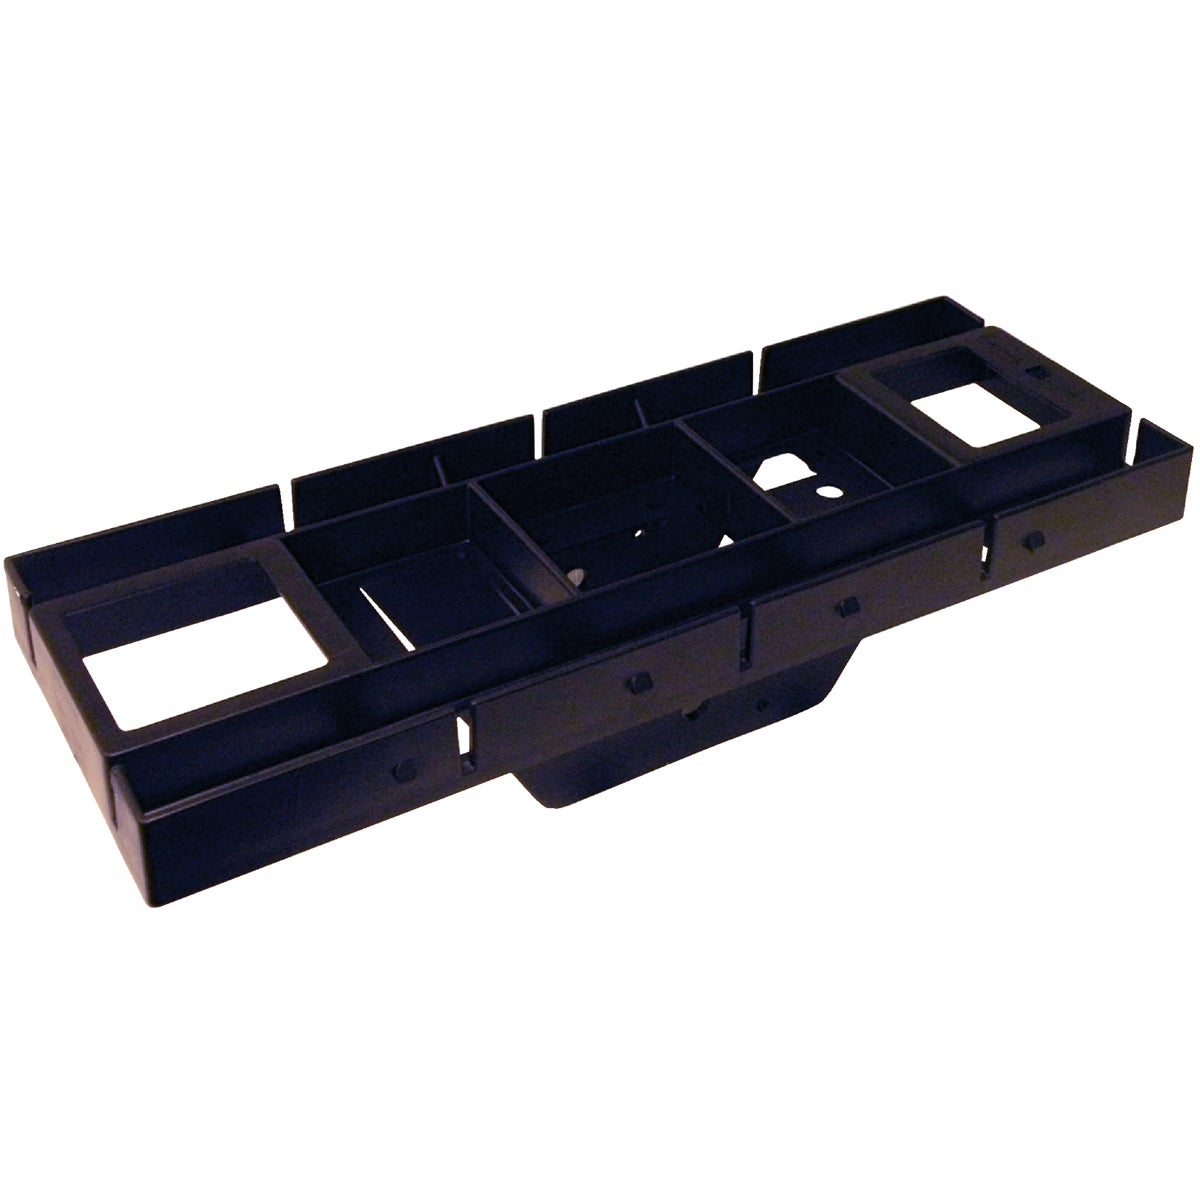 MAILBOX MOUNT BRACKET - MB225B by Solar Group